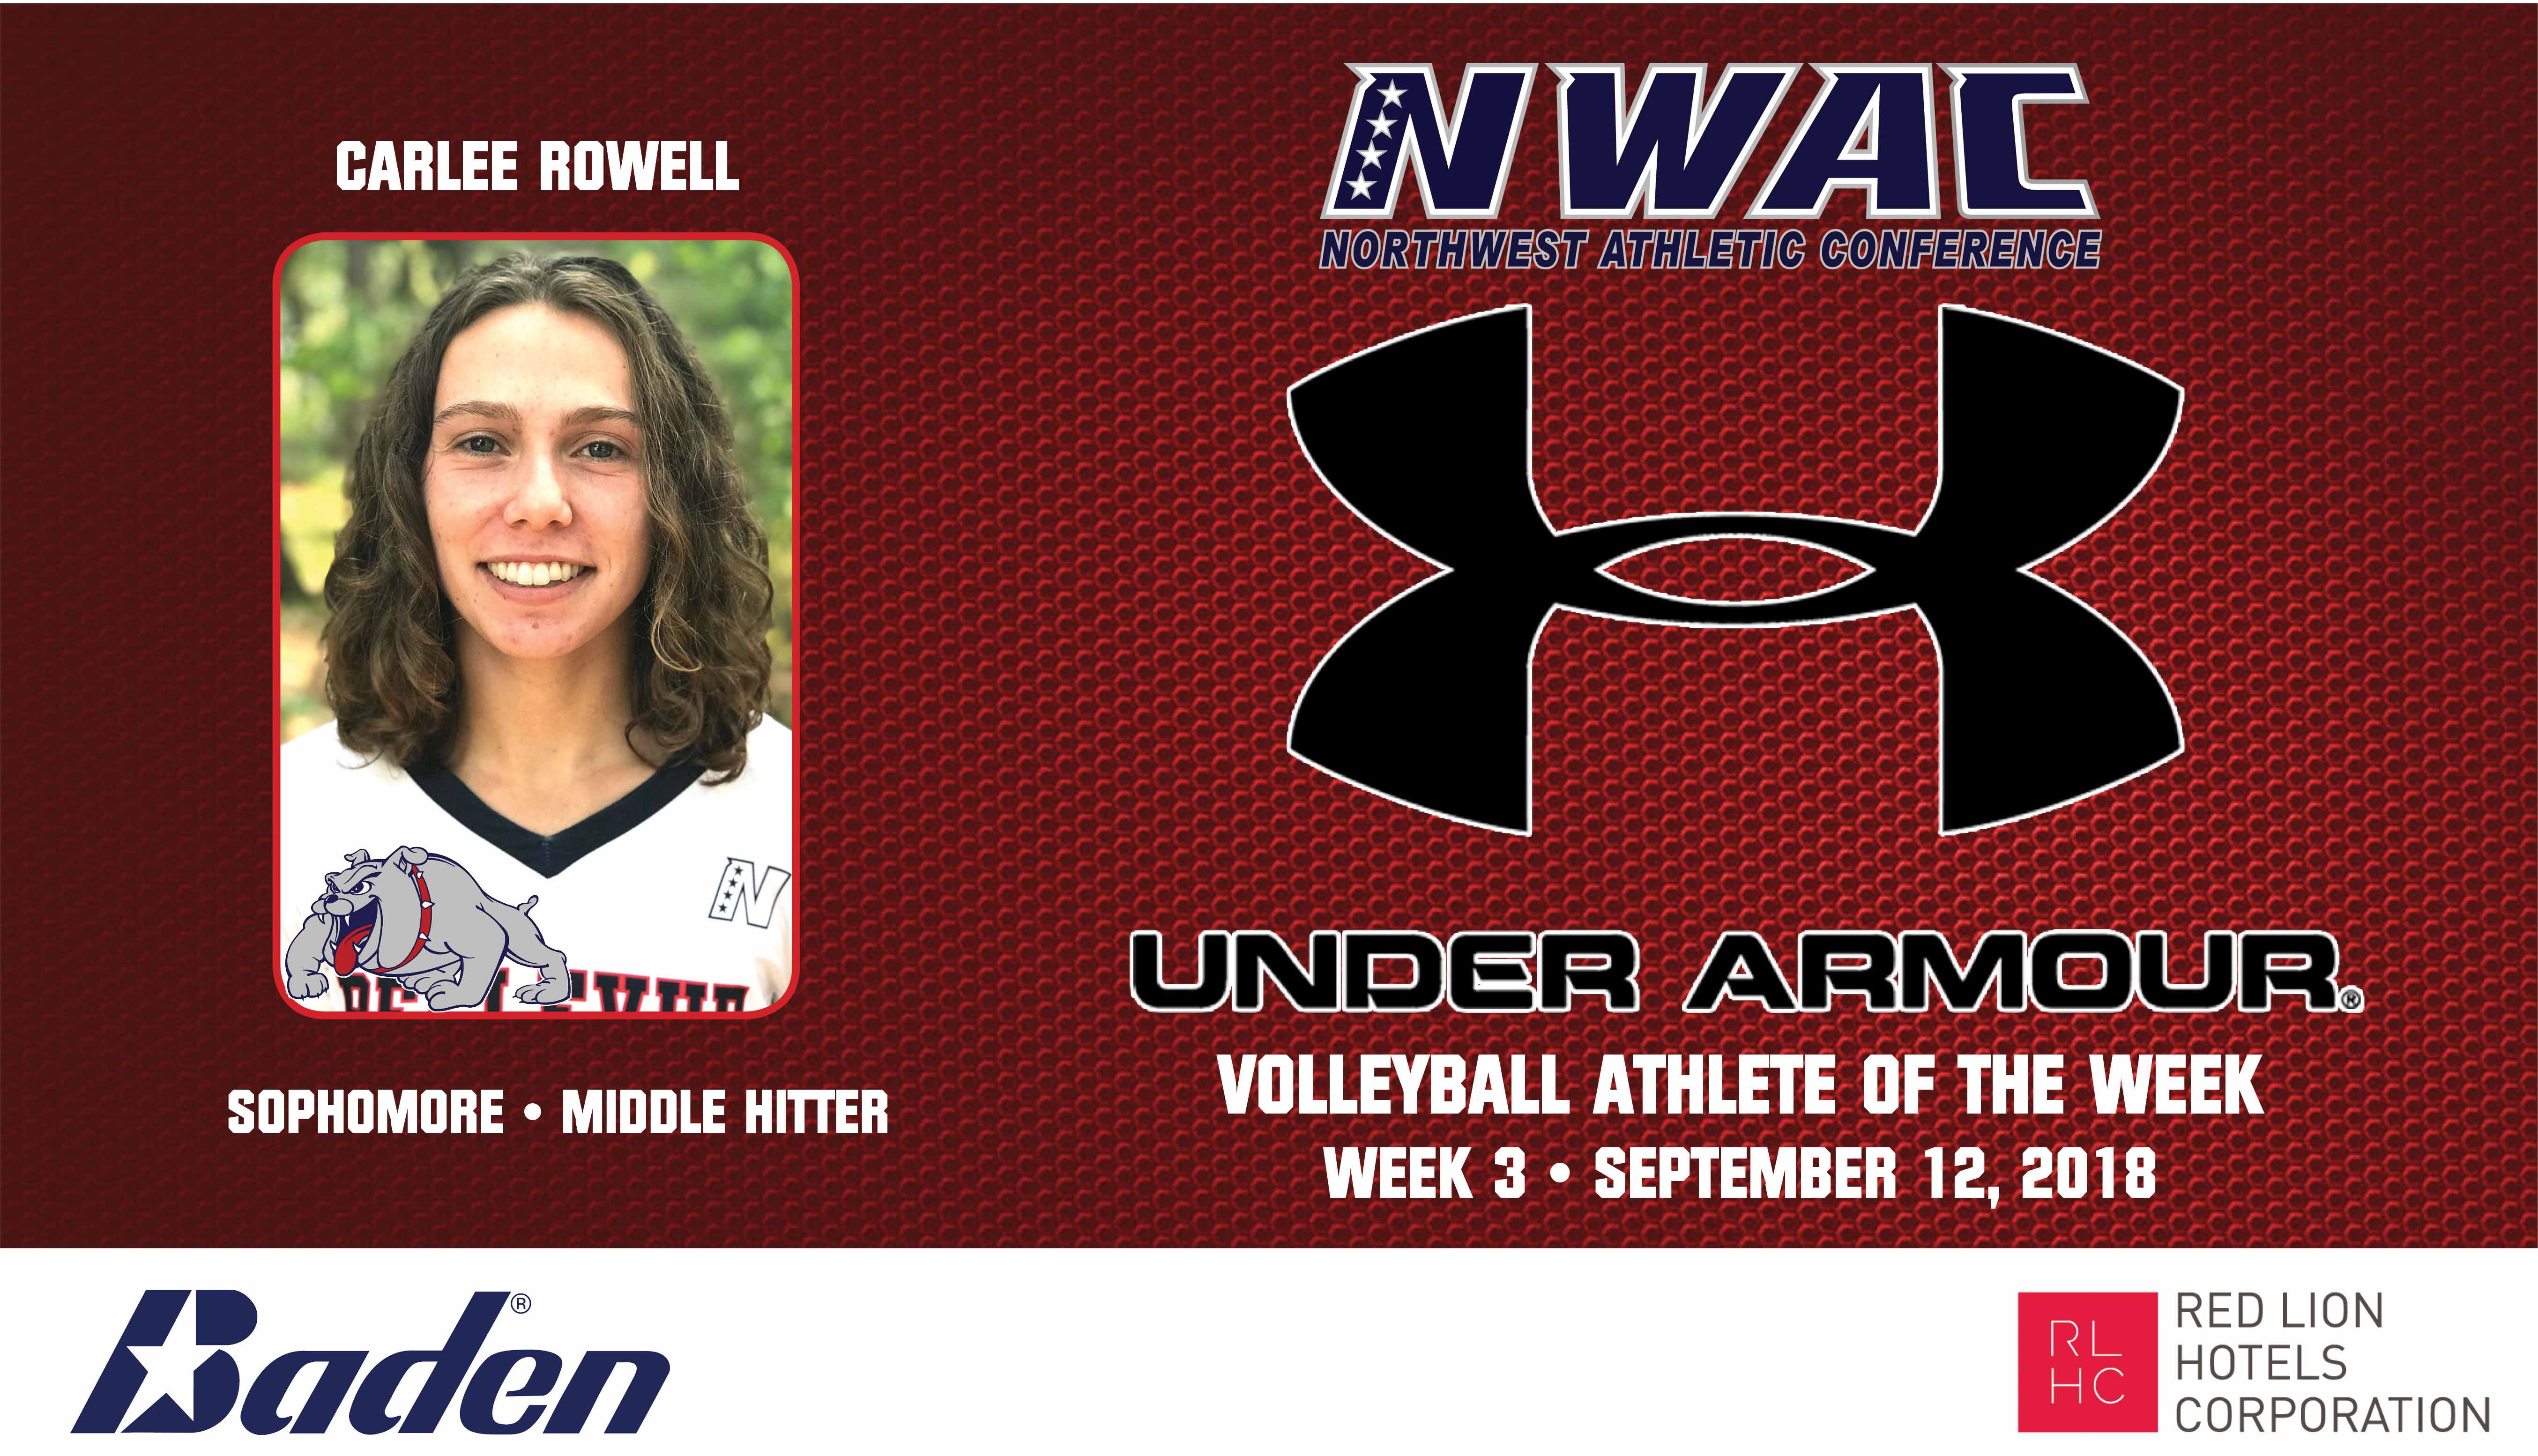 CARLEE ROWELL Under Armour Photo Banner